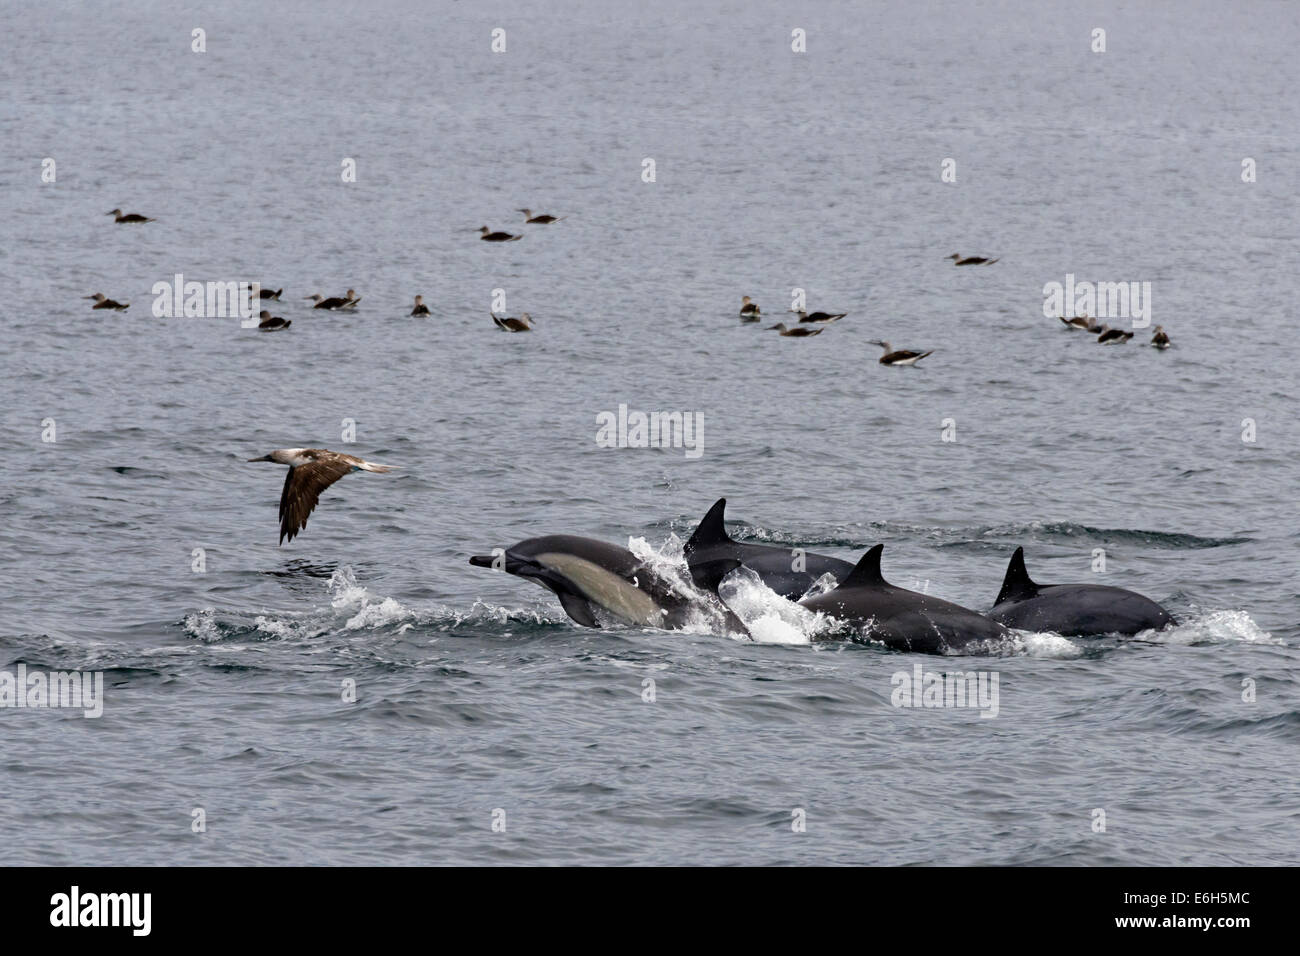 Long-beaked common dolphins and blue-footed boobies, Isla Carmen, Sea of Cortez, Baja, Mexico - Stock Image